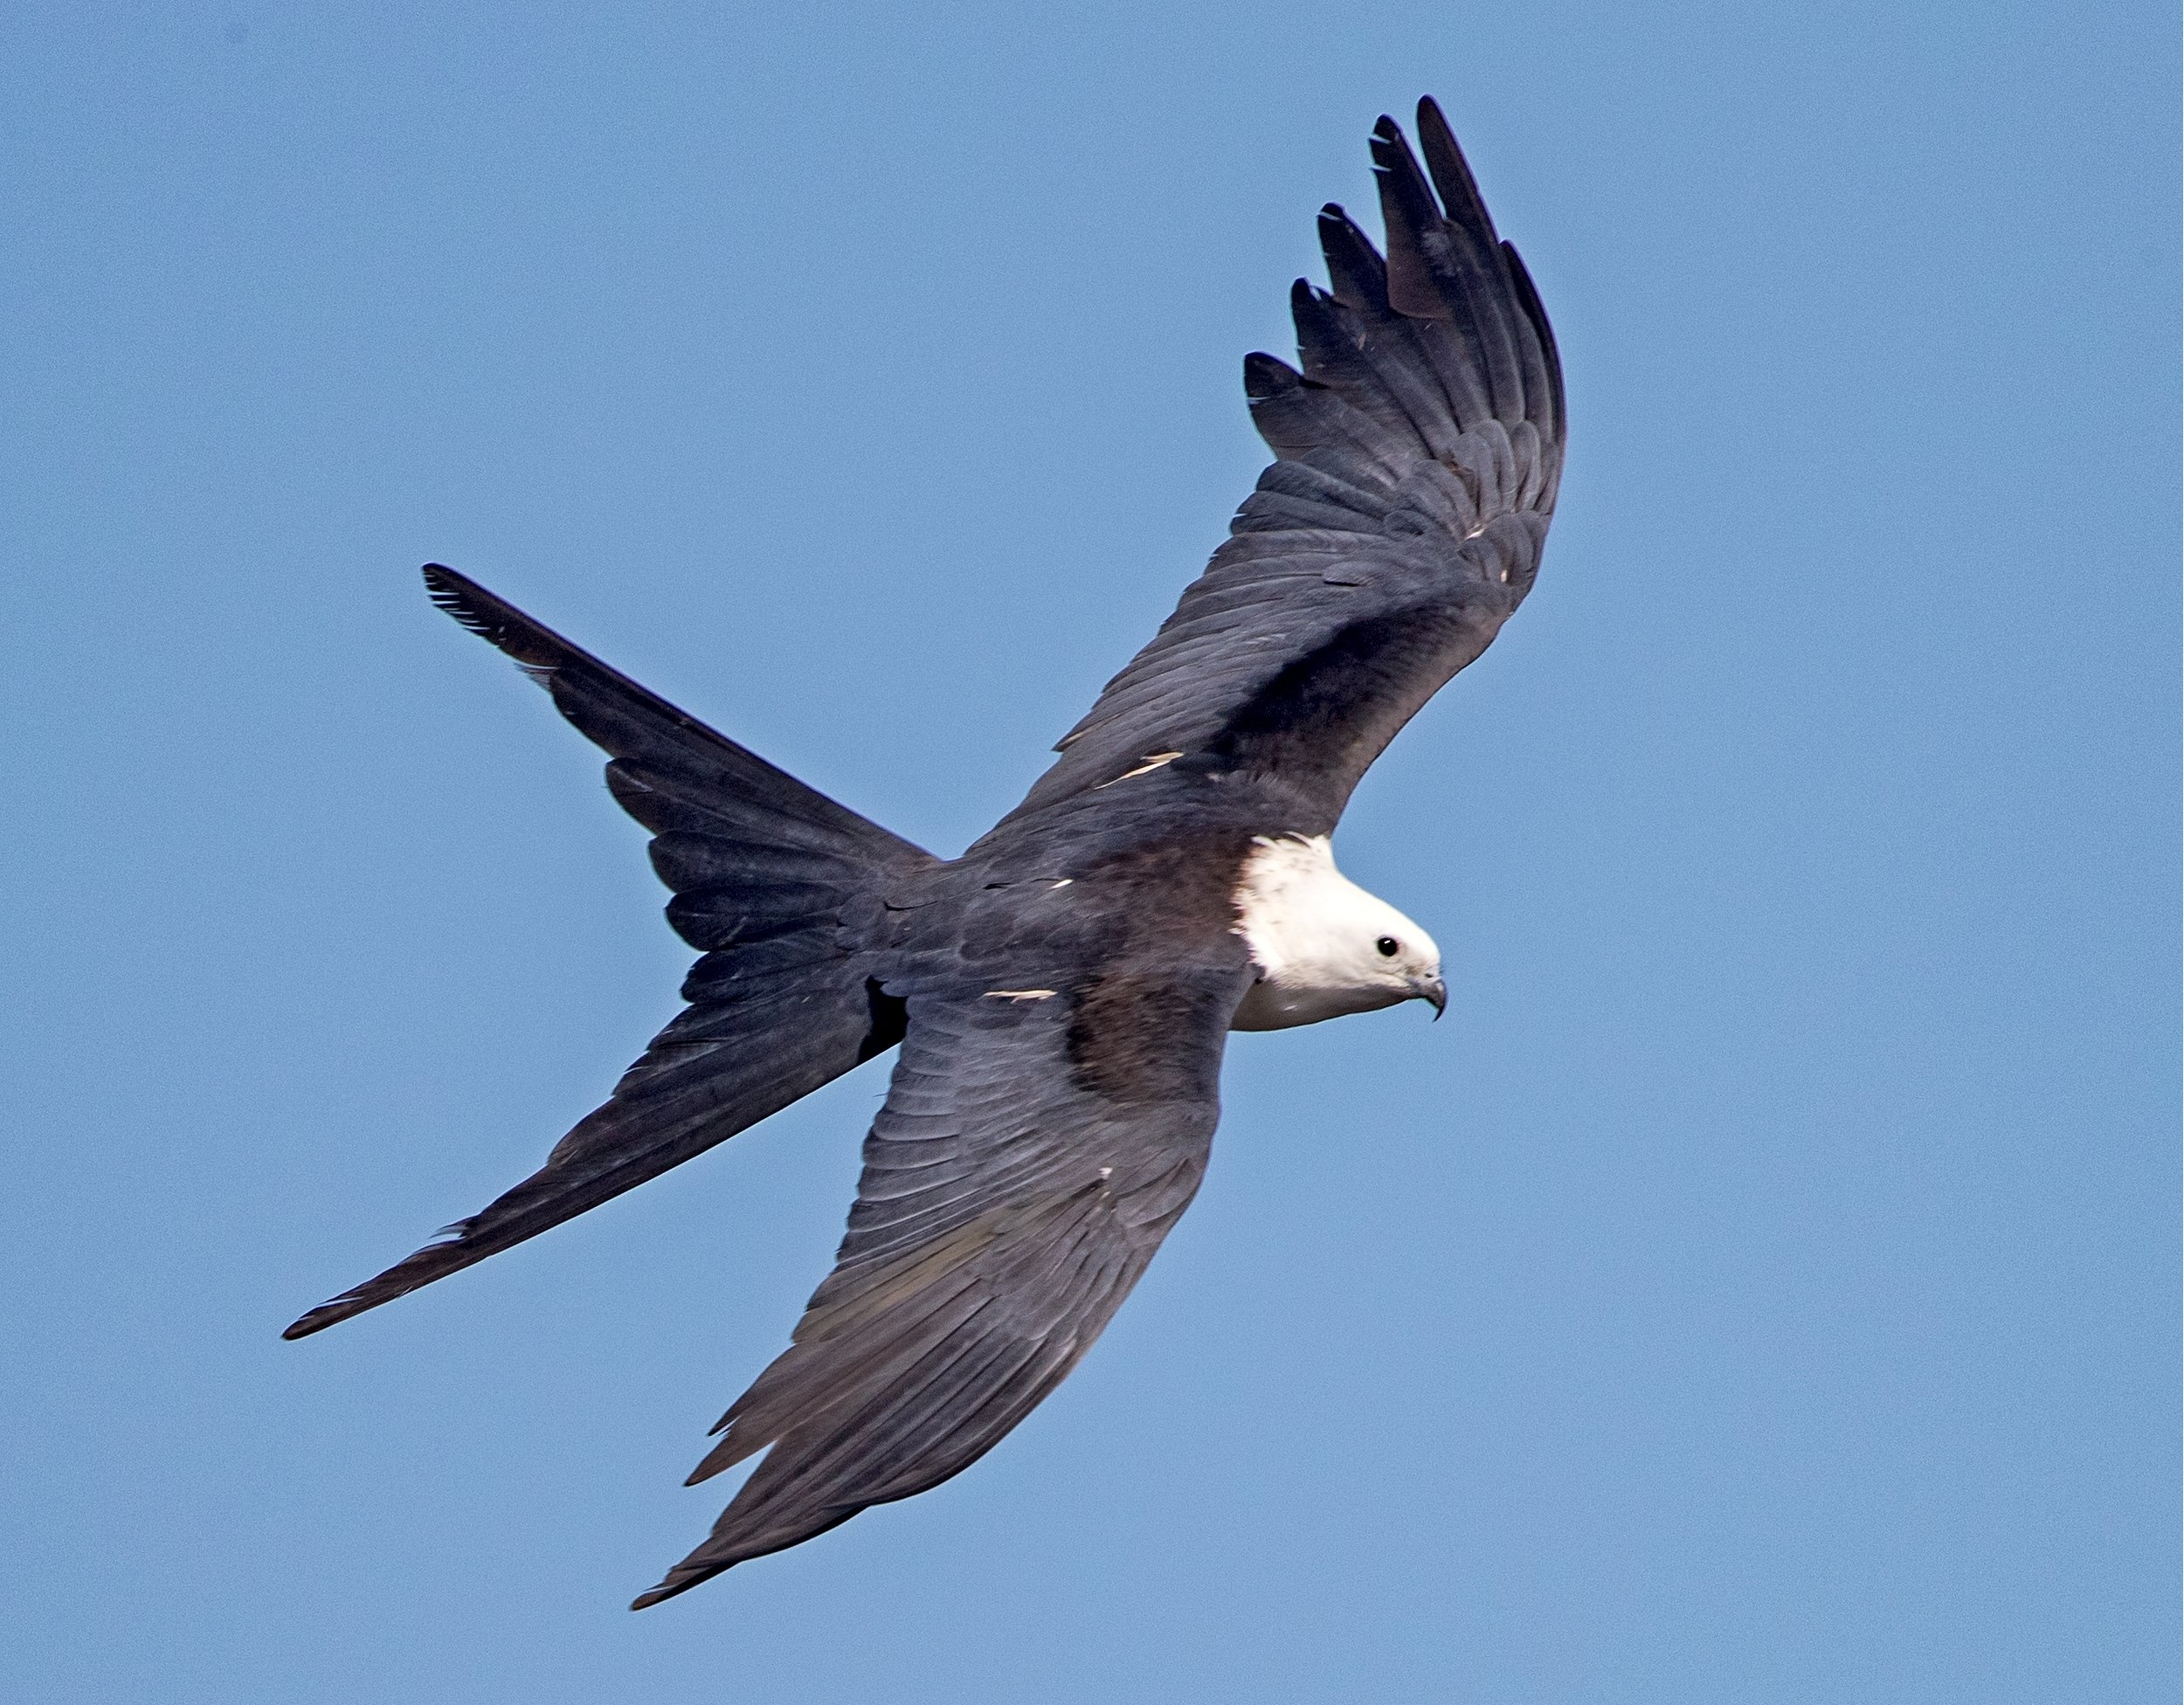 I got to see the migration gathering of the Swallow-tailed Kites preparing to return to Brazil for the winter